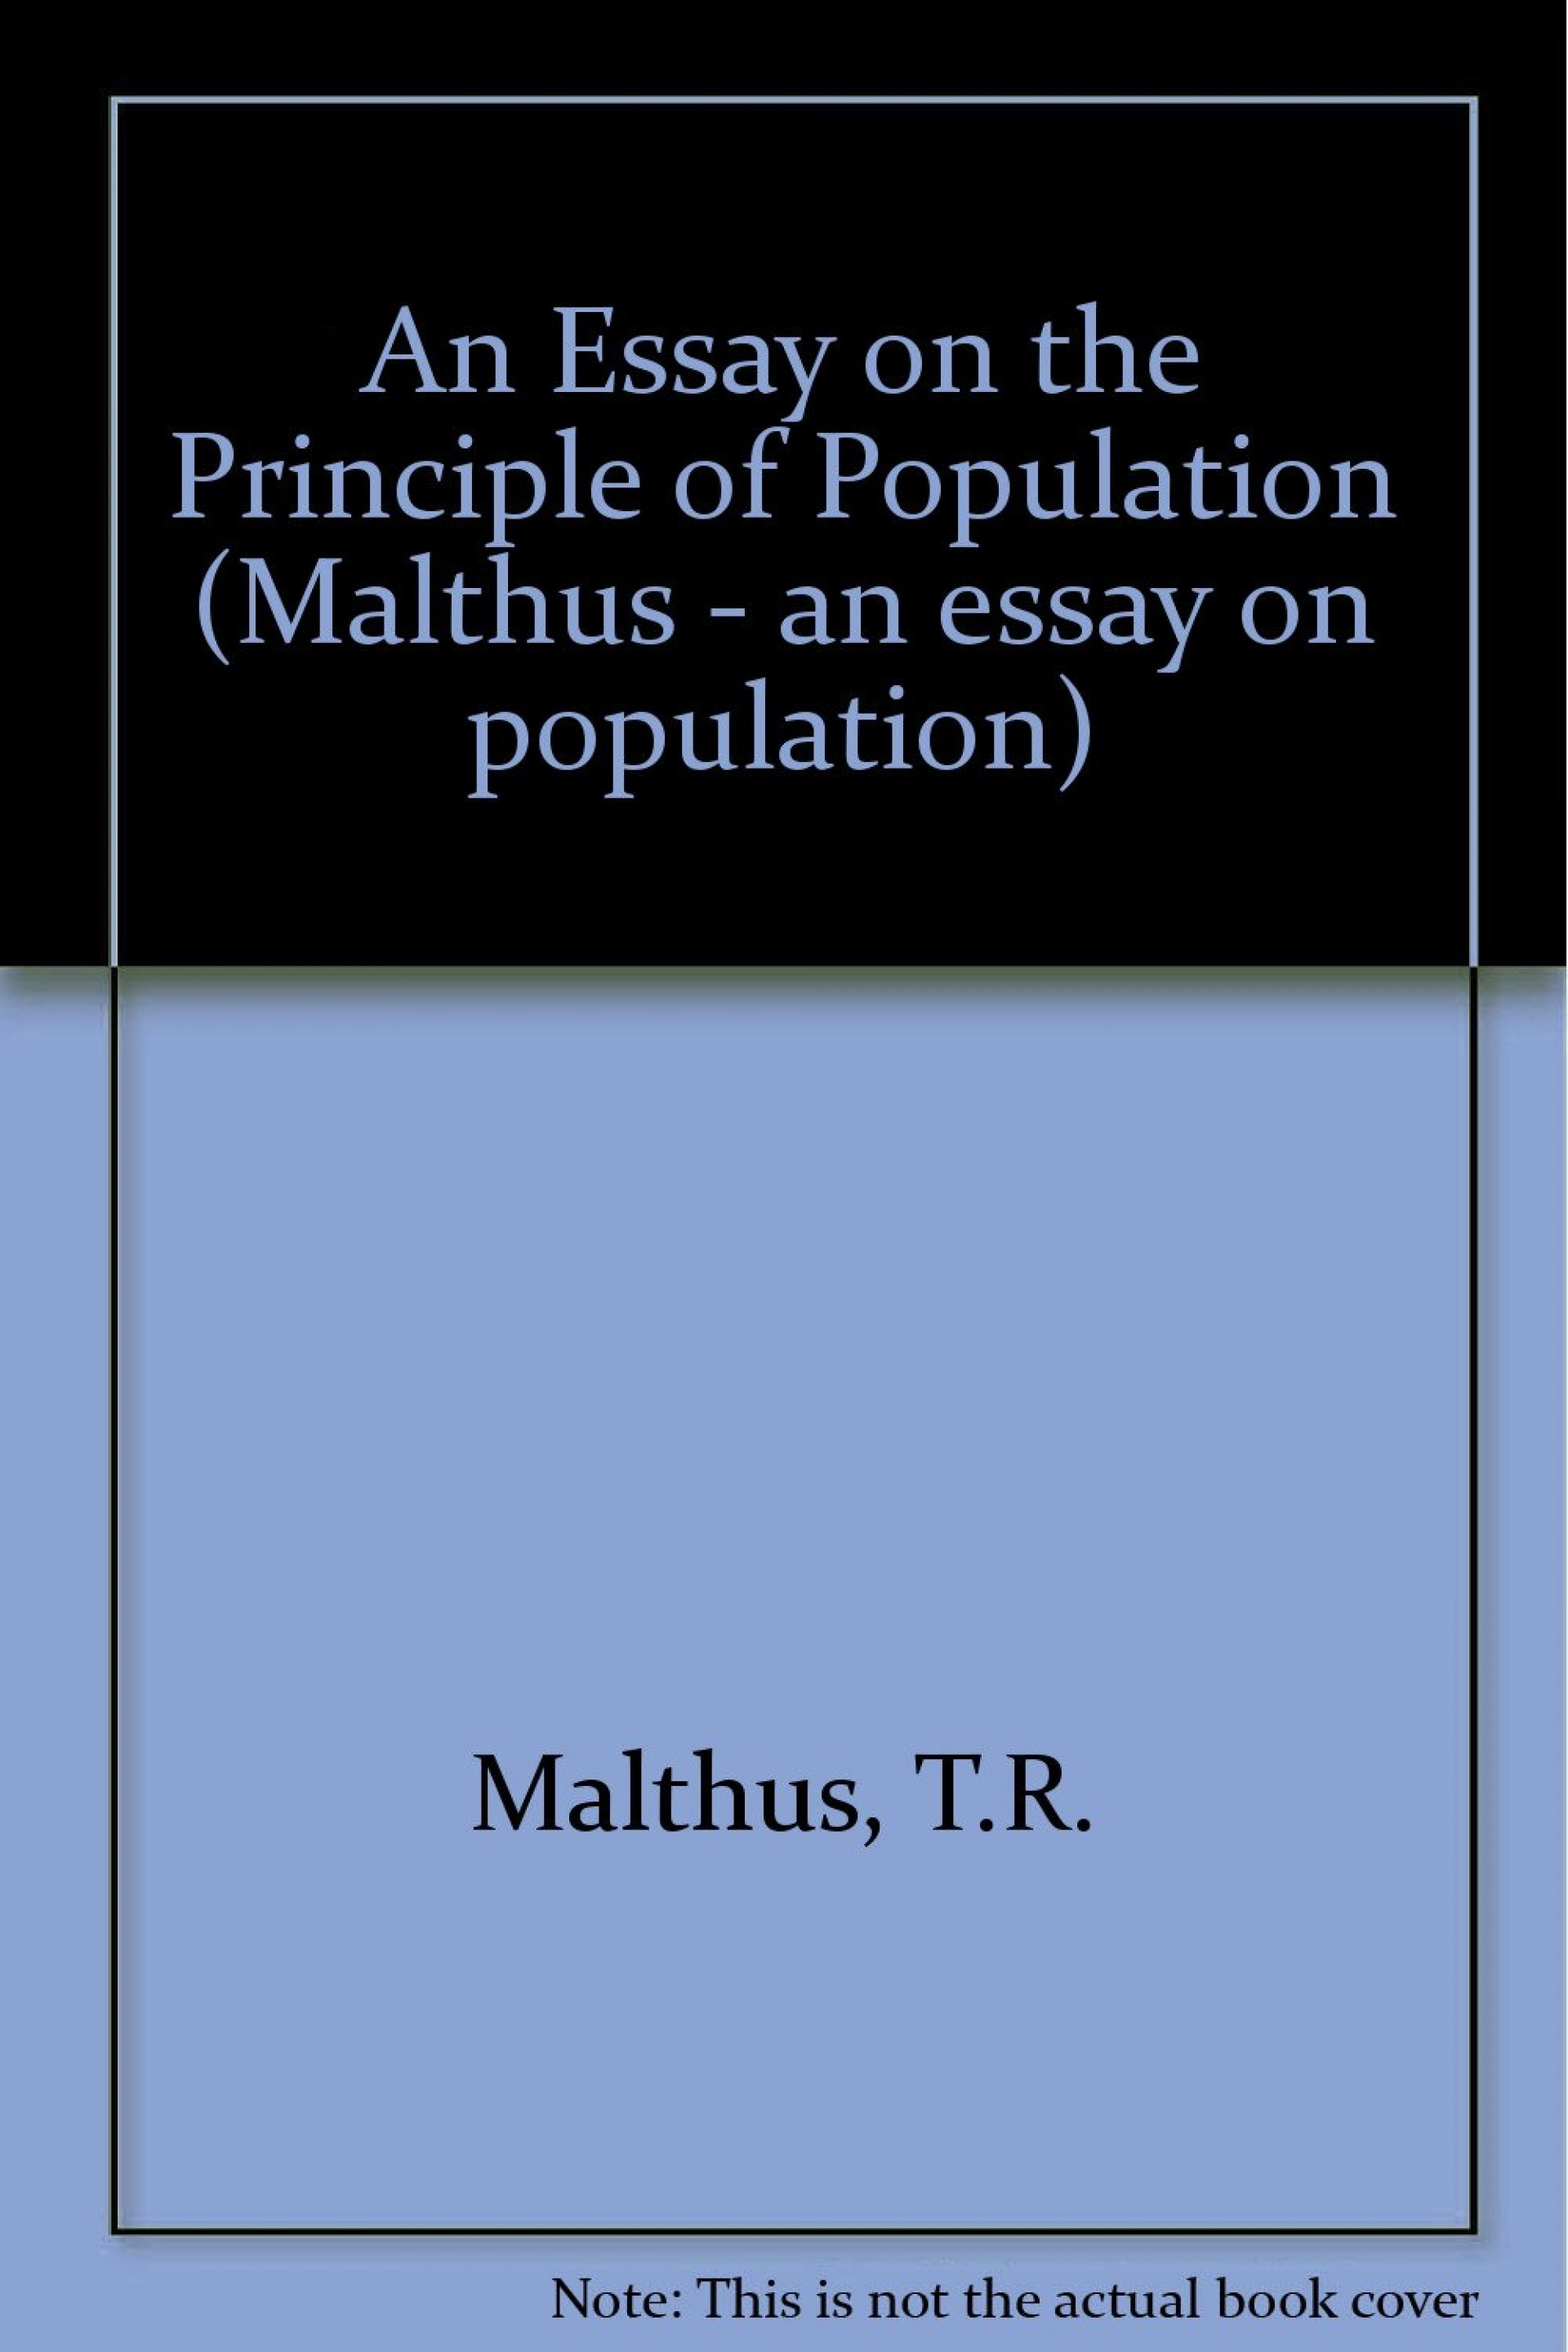 009 Essay Example Thomas Malthus An On The Principle Of Population Marvelous Summary Analysis Argued In His (1798) That 1920